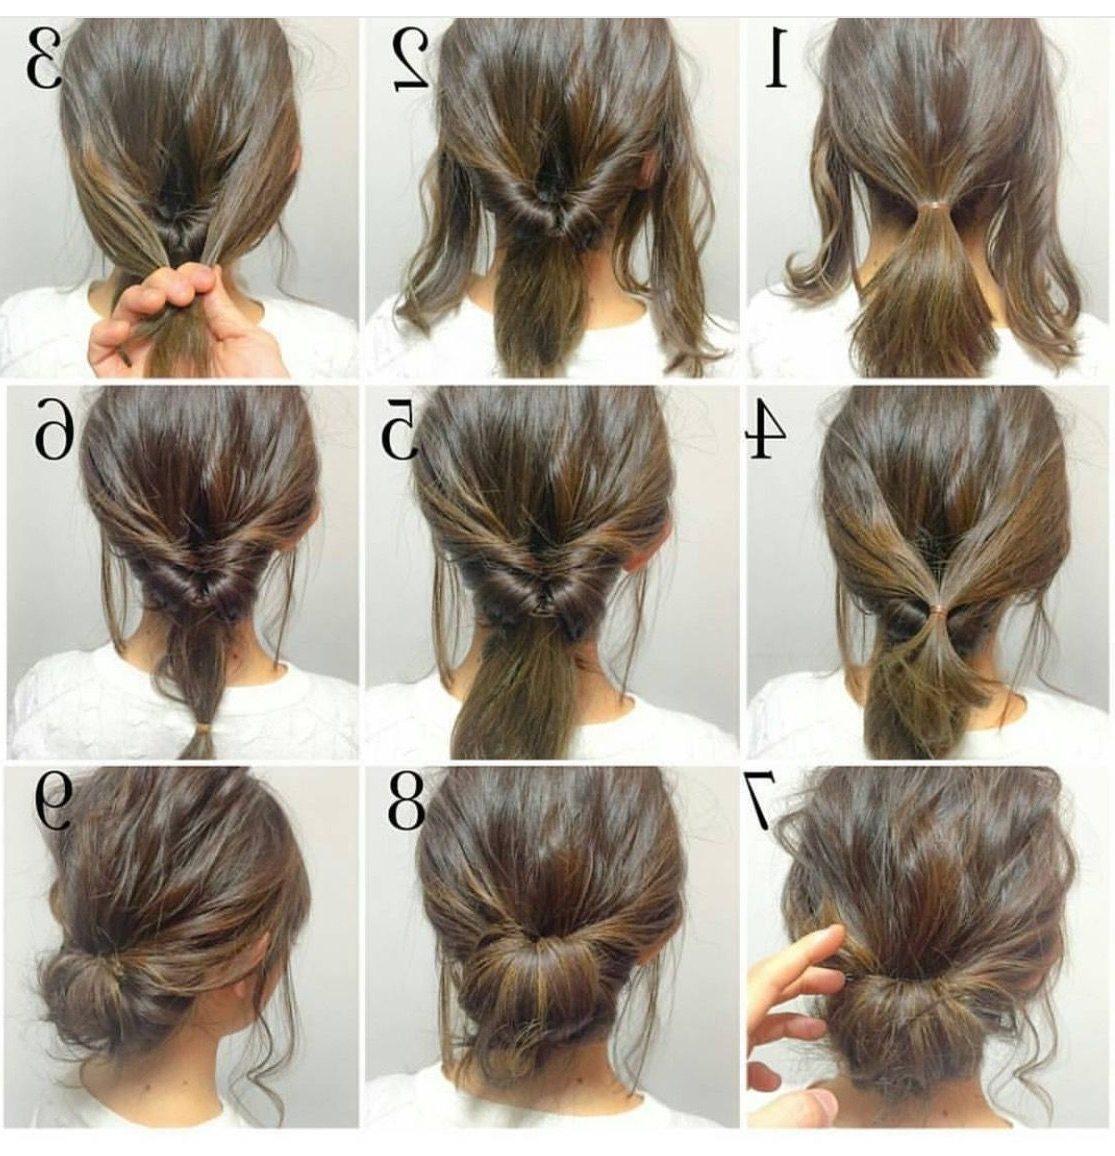 4 Messy Updos For Long Hair | Hairz | Pinterest | Updos, Hair Style With Regard To Easy Updo Hairstyles For Medium Hair (View 6 of 15)